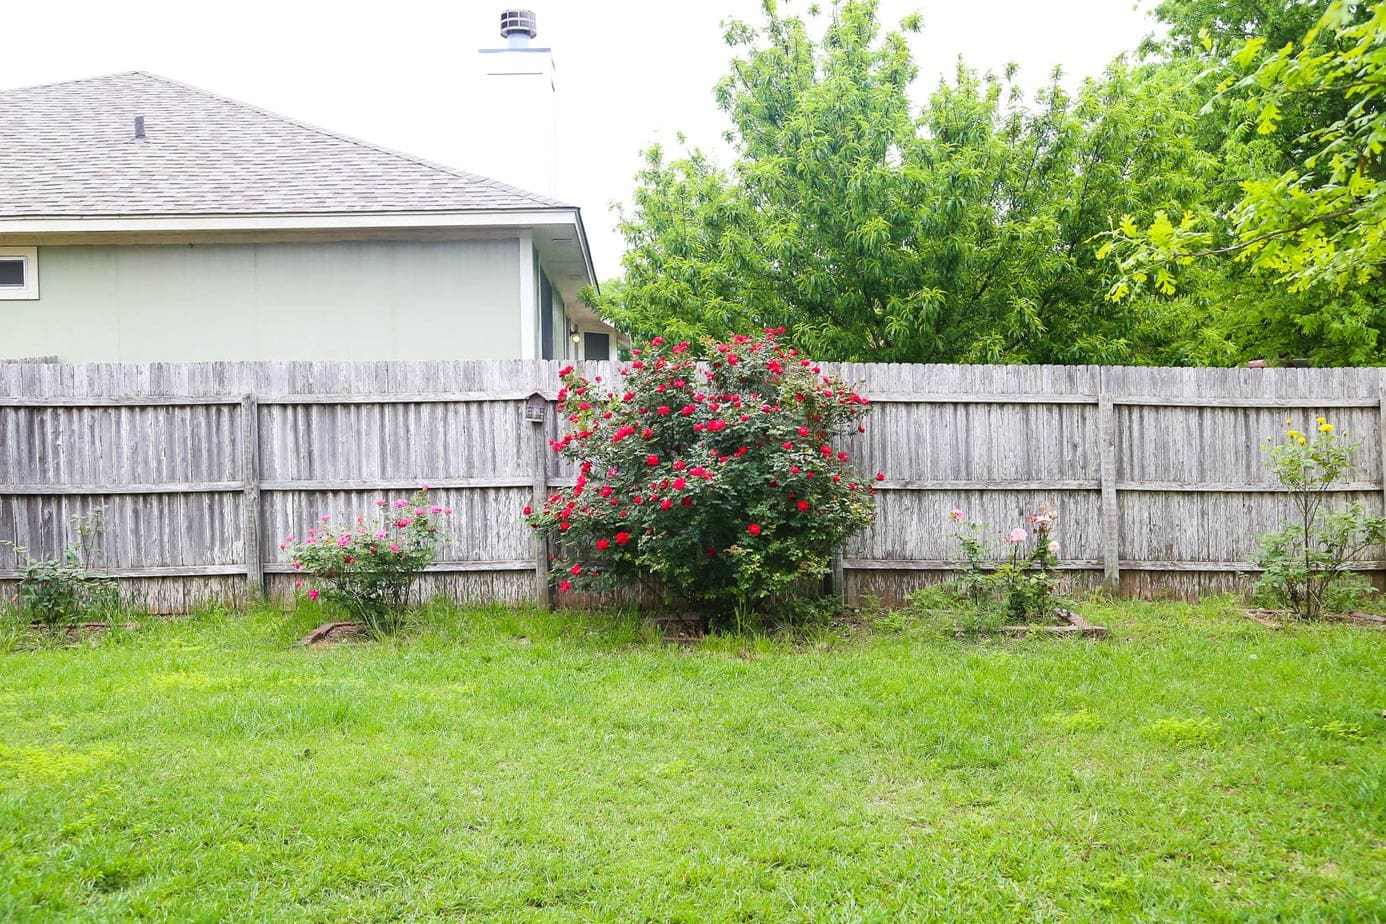 Row of rose bushes